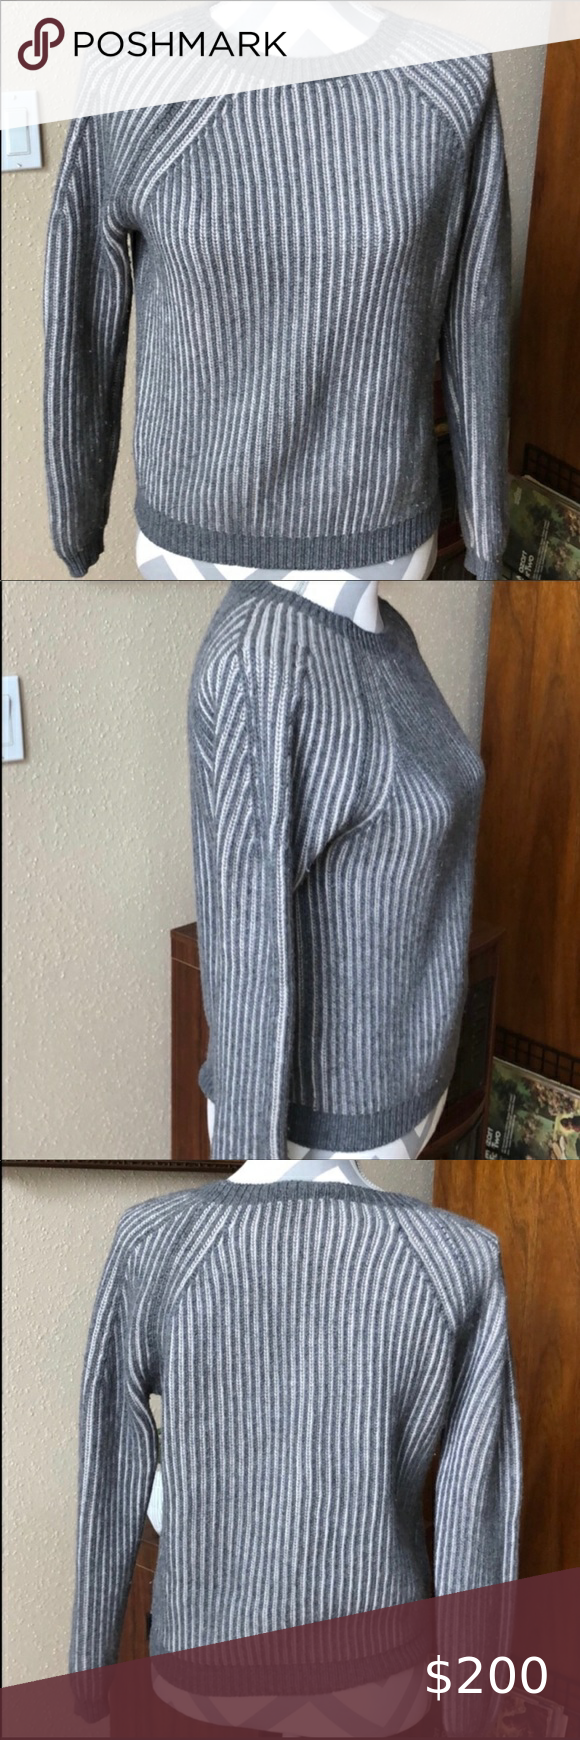 Peserico Tricot Cashmere and Silk Sweater